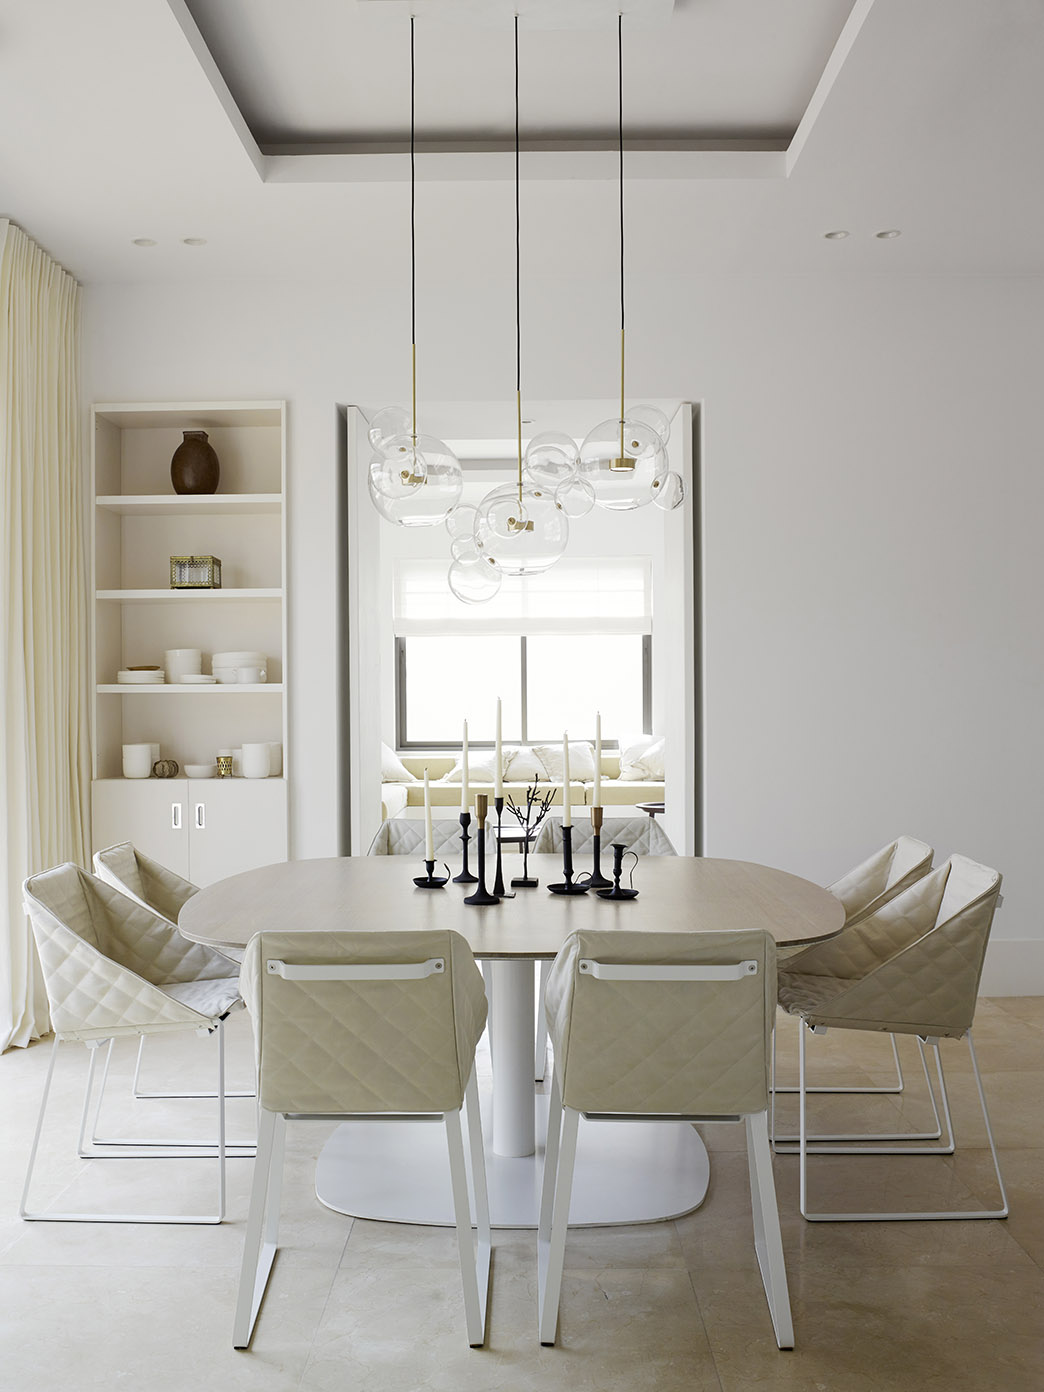 Jawaher Villas Riyadh with KEKKE table and dining chair